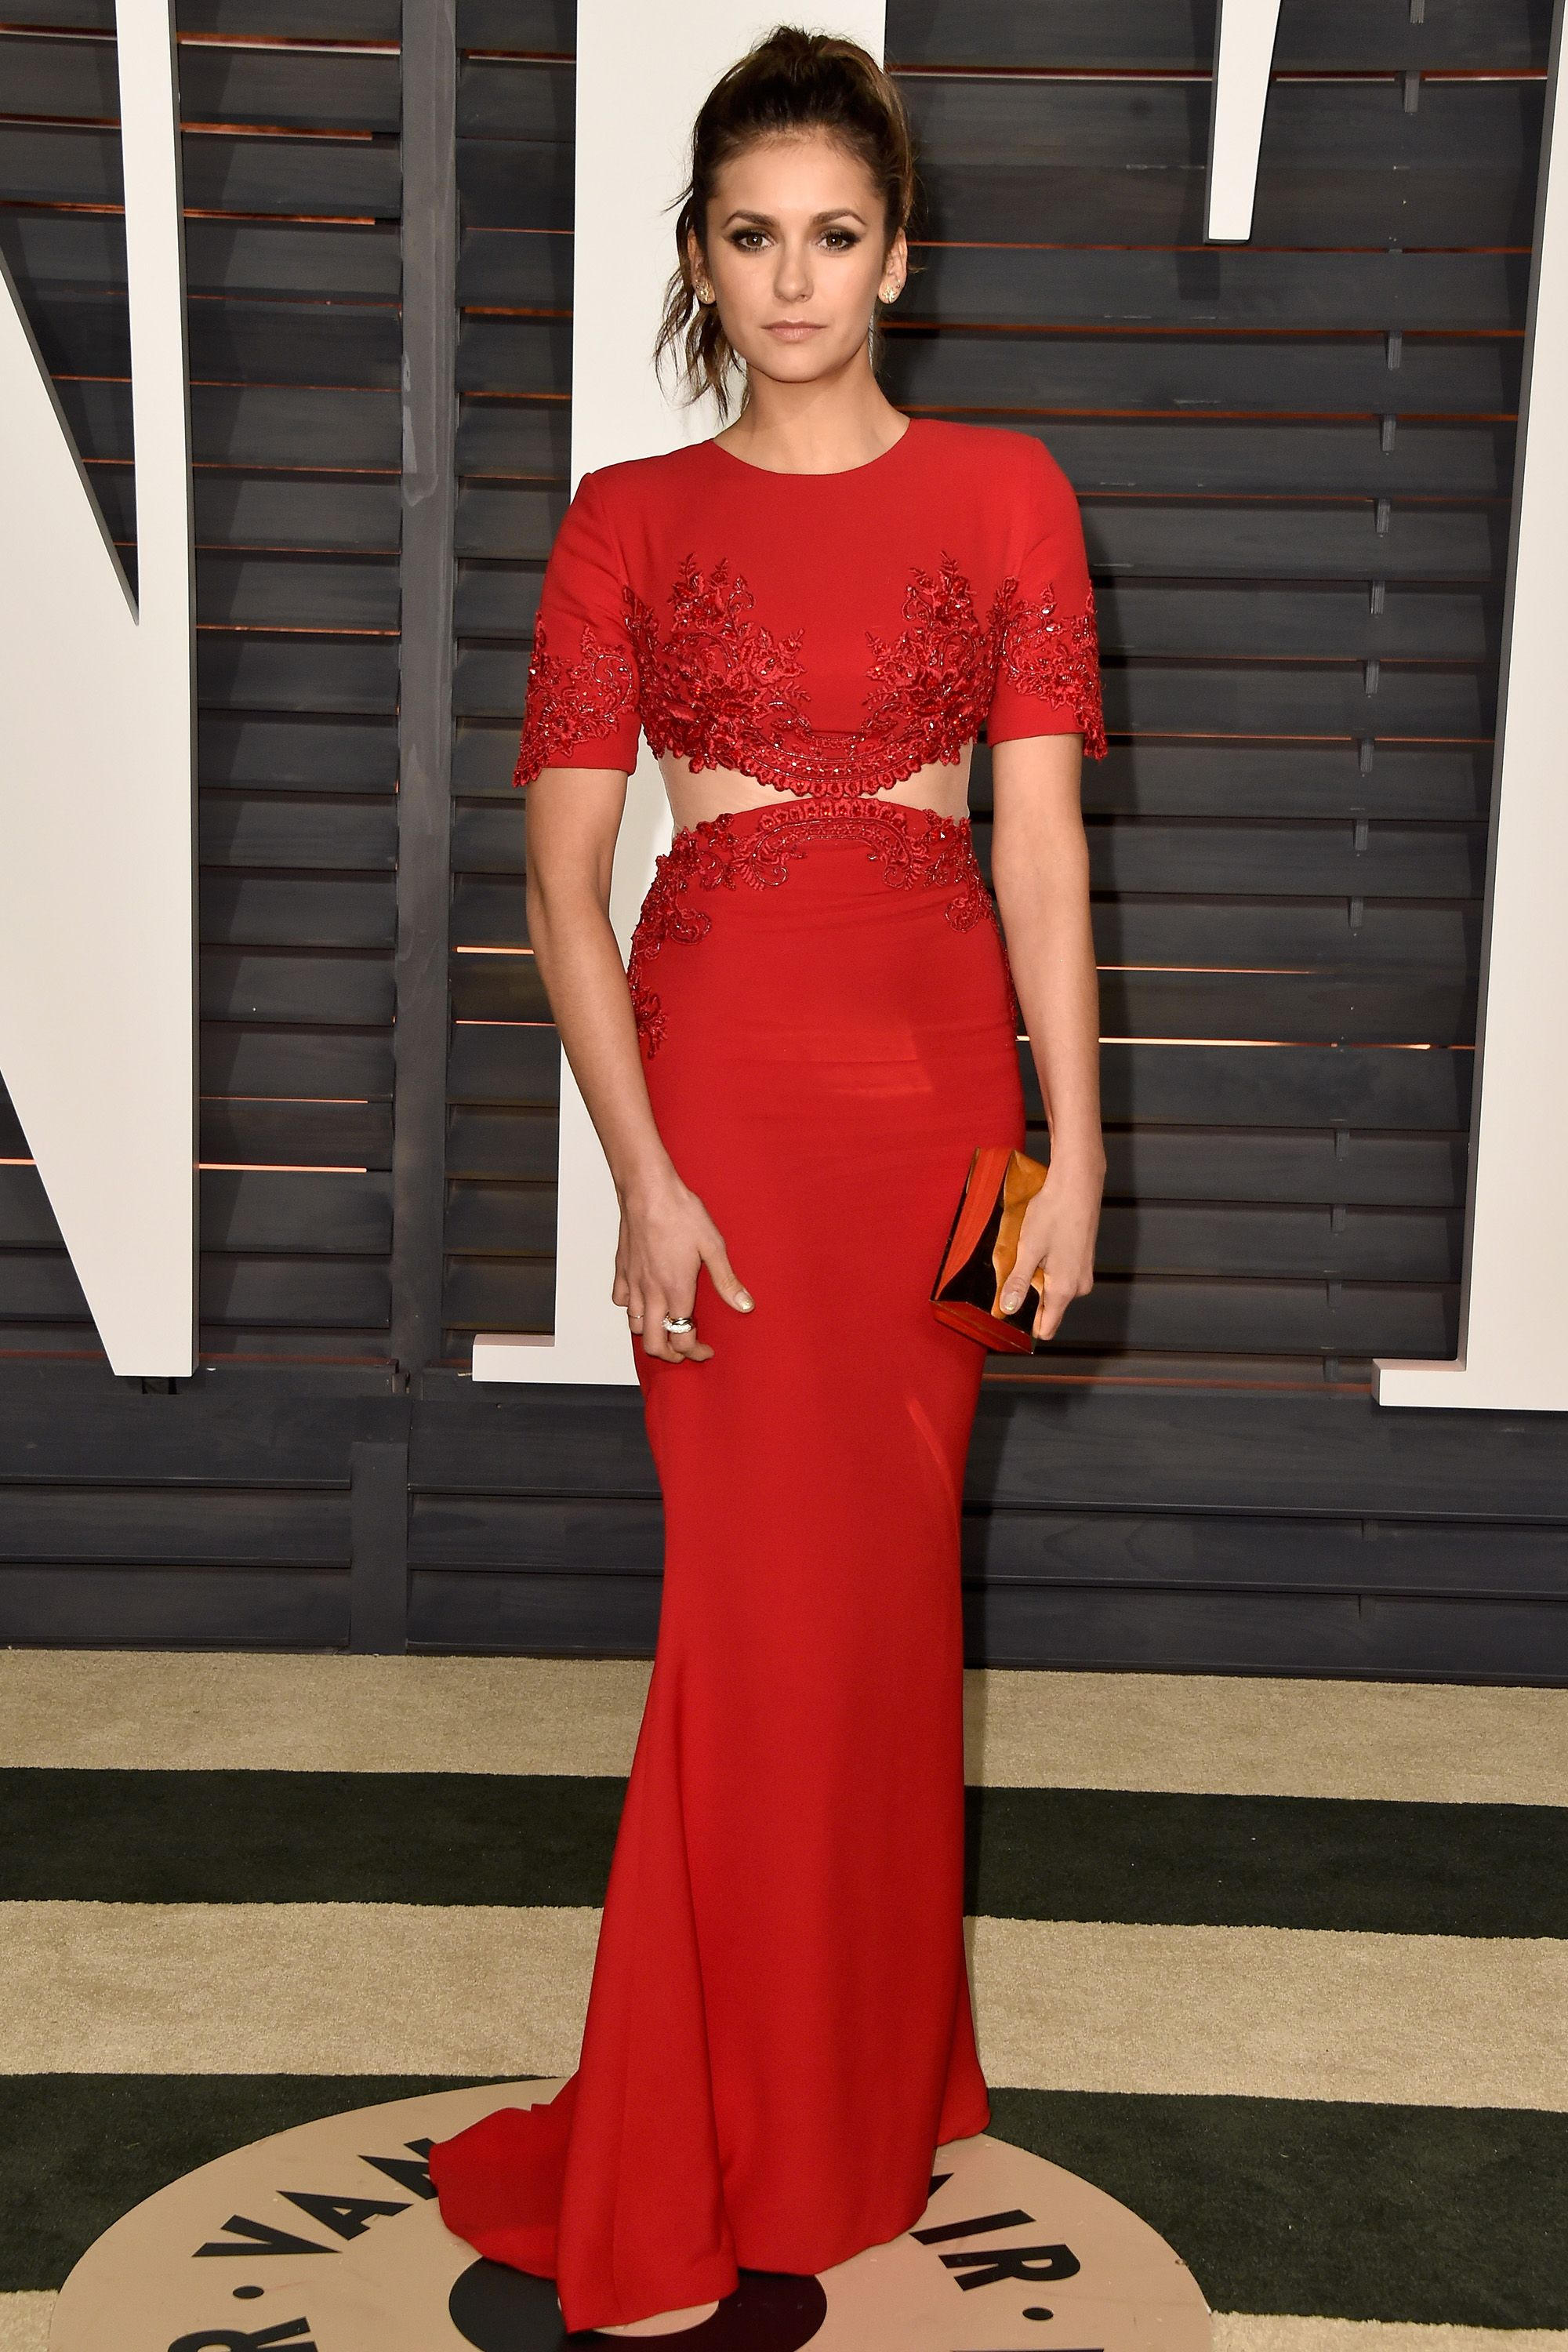 BEVERLY HILLS, CA - FEBRUARY 22:  Actress Nina Dobrev attends the 2015 Vanity Fair Oscar Party hosted by Graydon Carter at Wallis Annenberg Center for the Performing Arts on February 22, 2015 in Beverly Hills, California.  (Photo by Pascal Le Segretain/Getty Images)